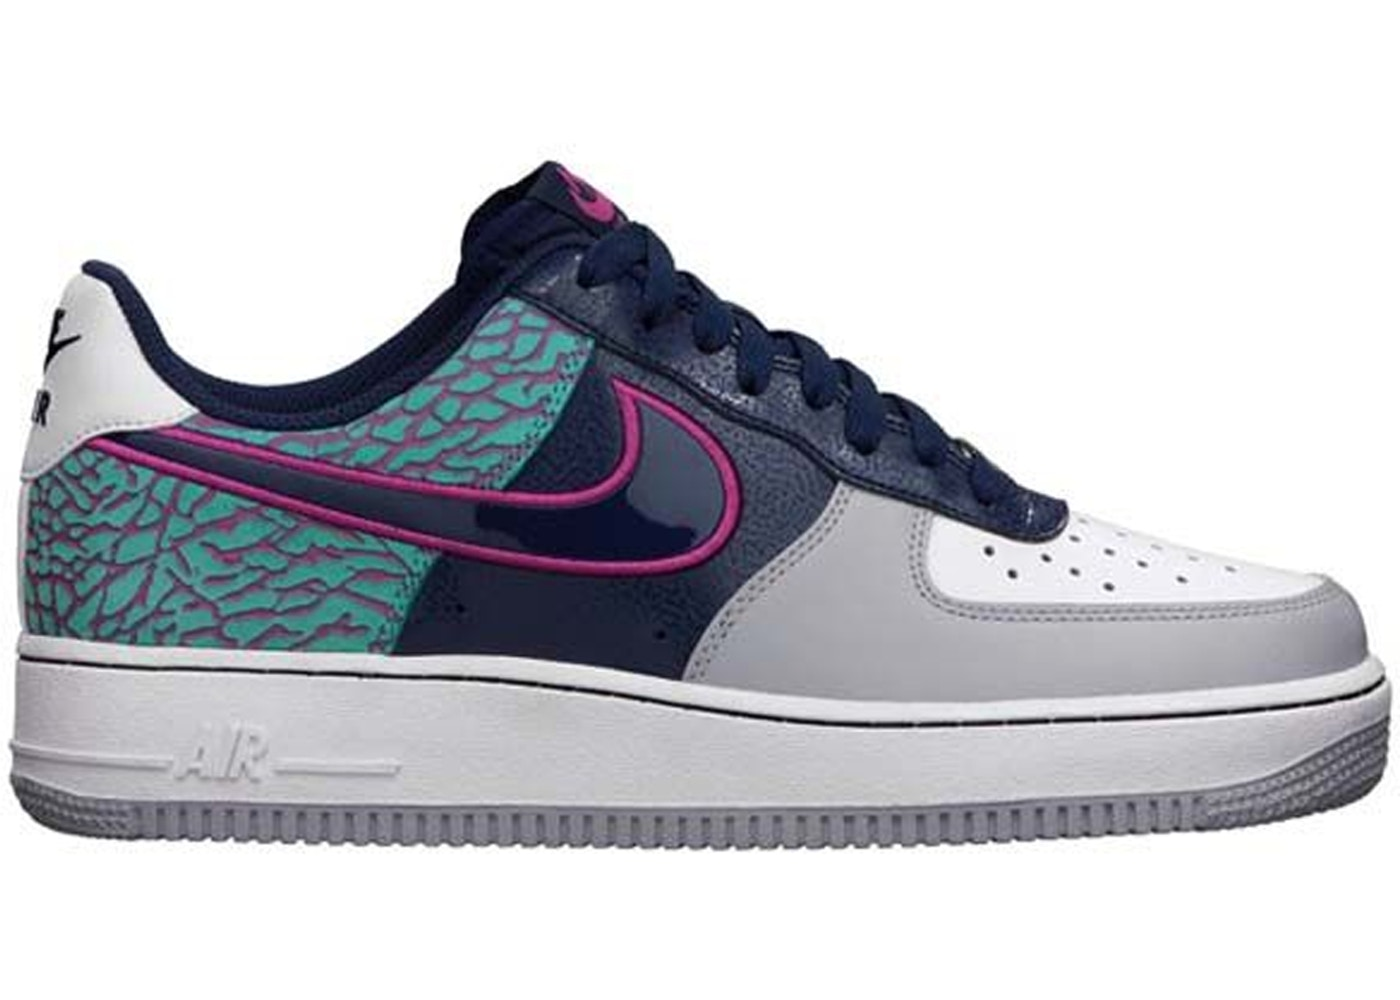 super popular 5c14c be61c Sell. or Ask. Size  11.5. View All Bids. Air Force 1 Low Midnight Navy  Fusion Pink